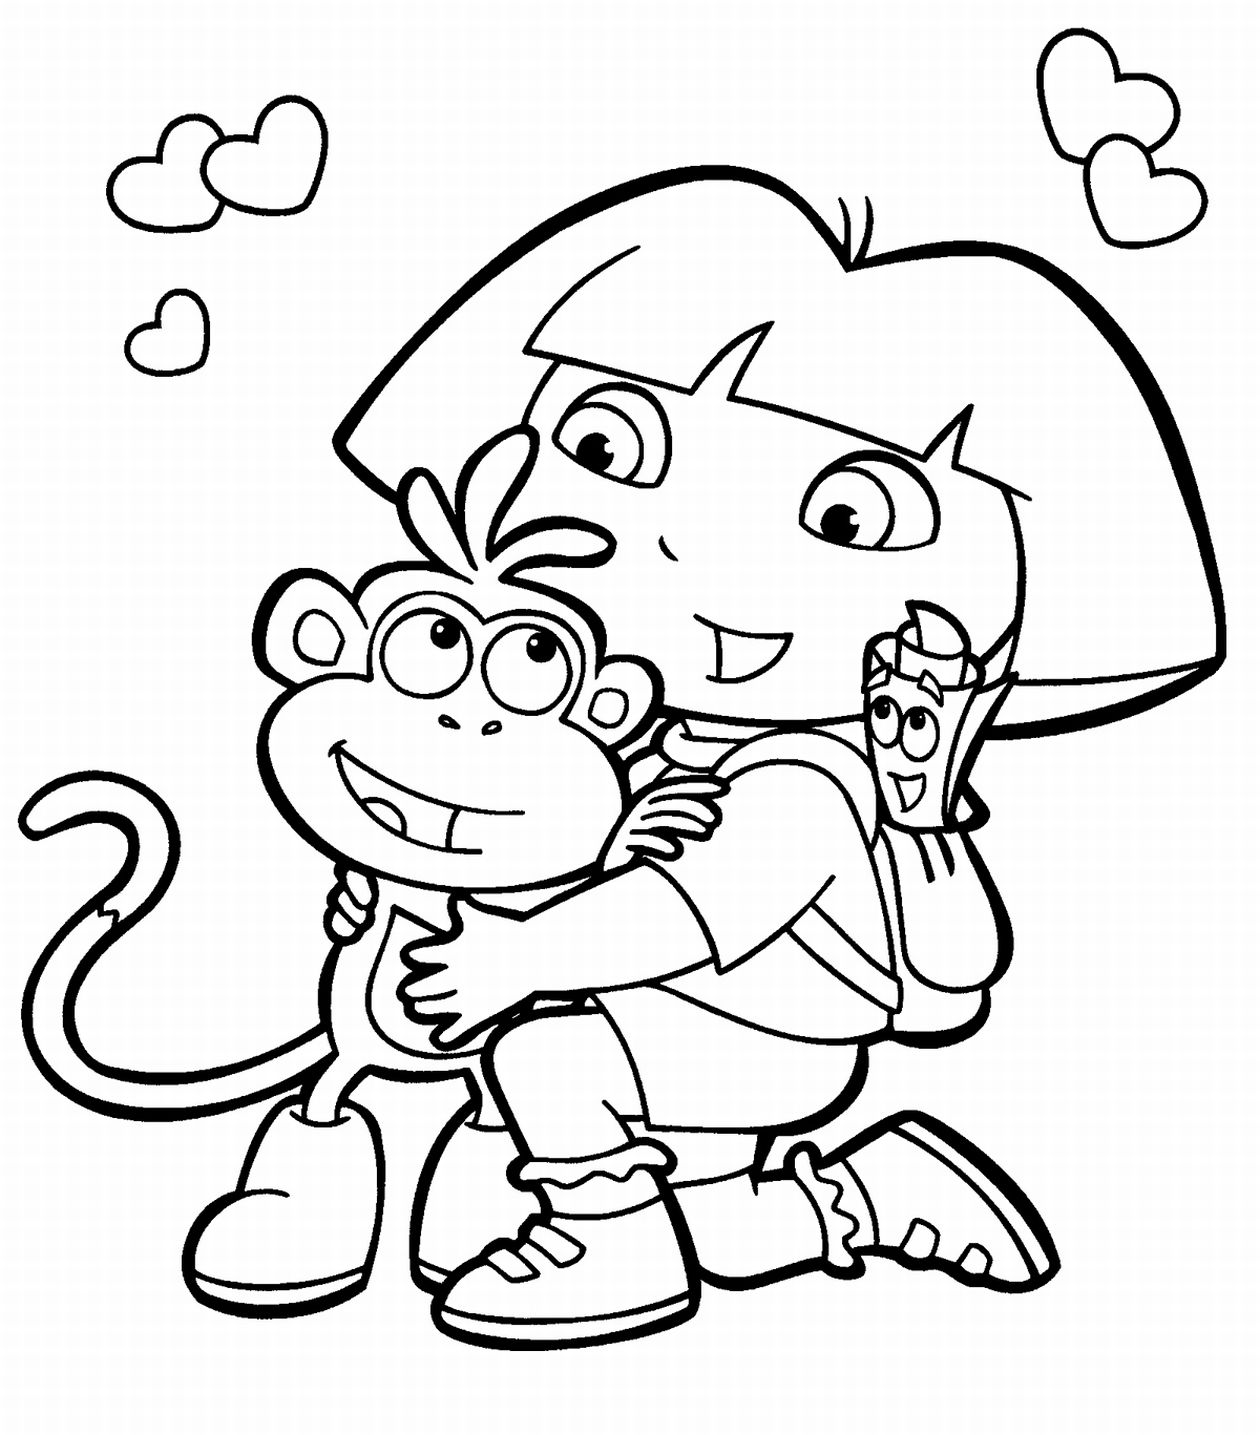 dora printables coloring print download dora coloring pages to learn new things printables coloring dora